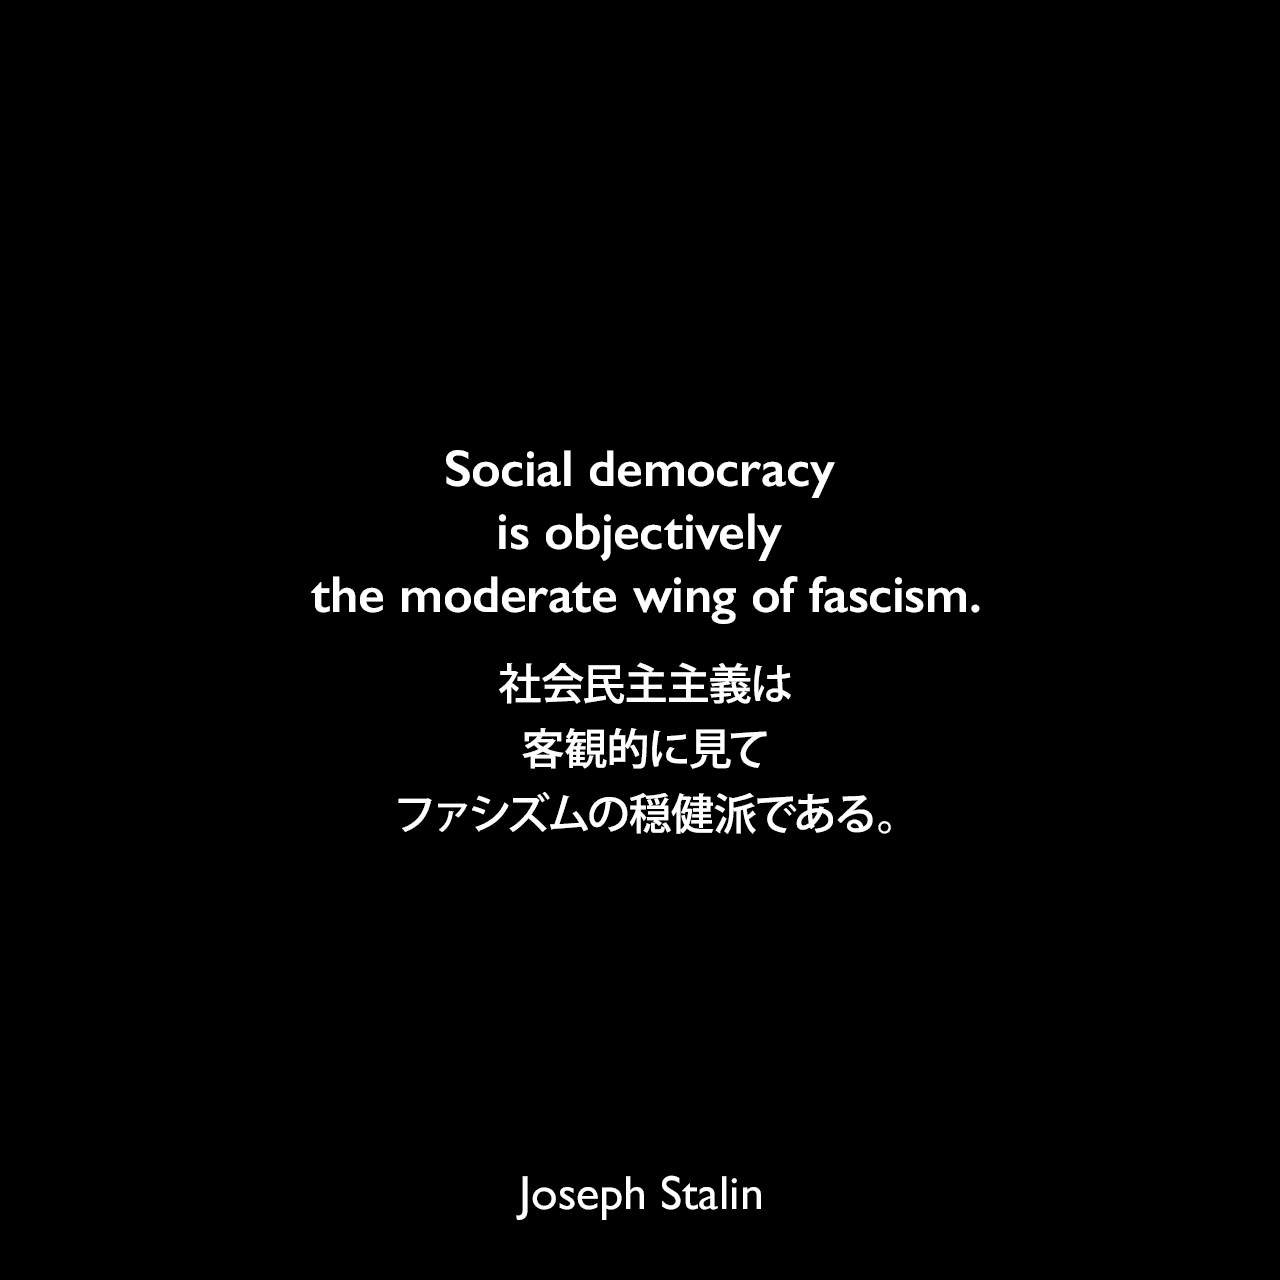 Social democracy is objectively the moderate wing of fascism.社会民主主義は客観的に見てファシズムの穏健派である。- 1924年1月〜11月 スターリンによるレポート「Concerning the International Situation」よりJoseph Stalin